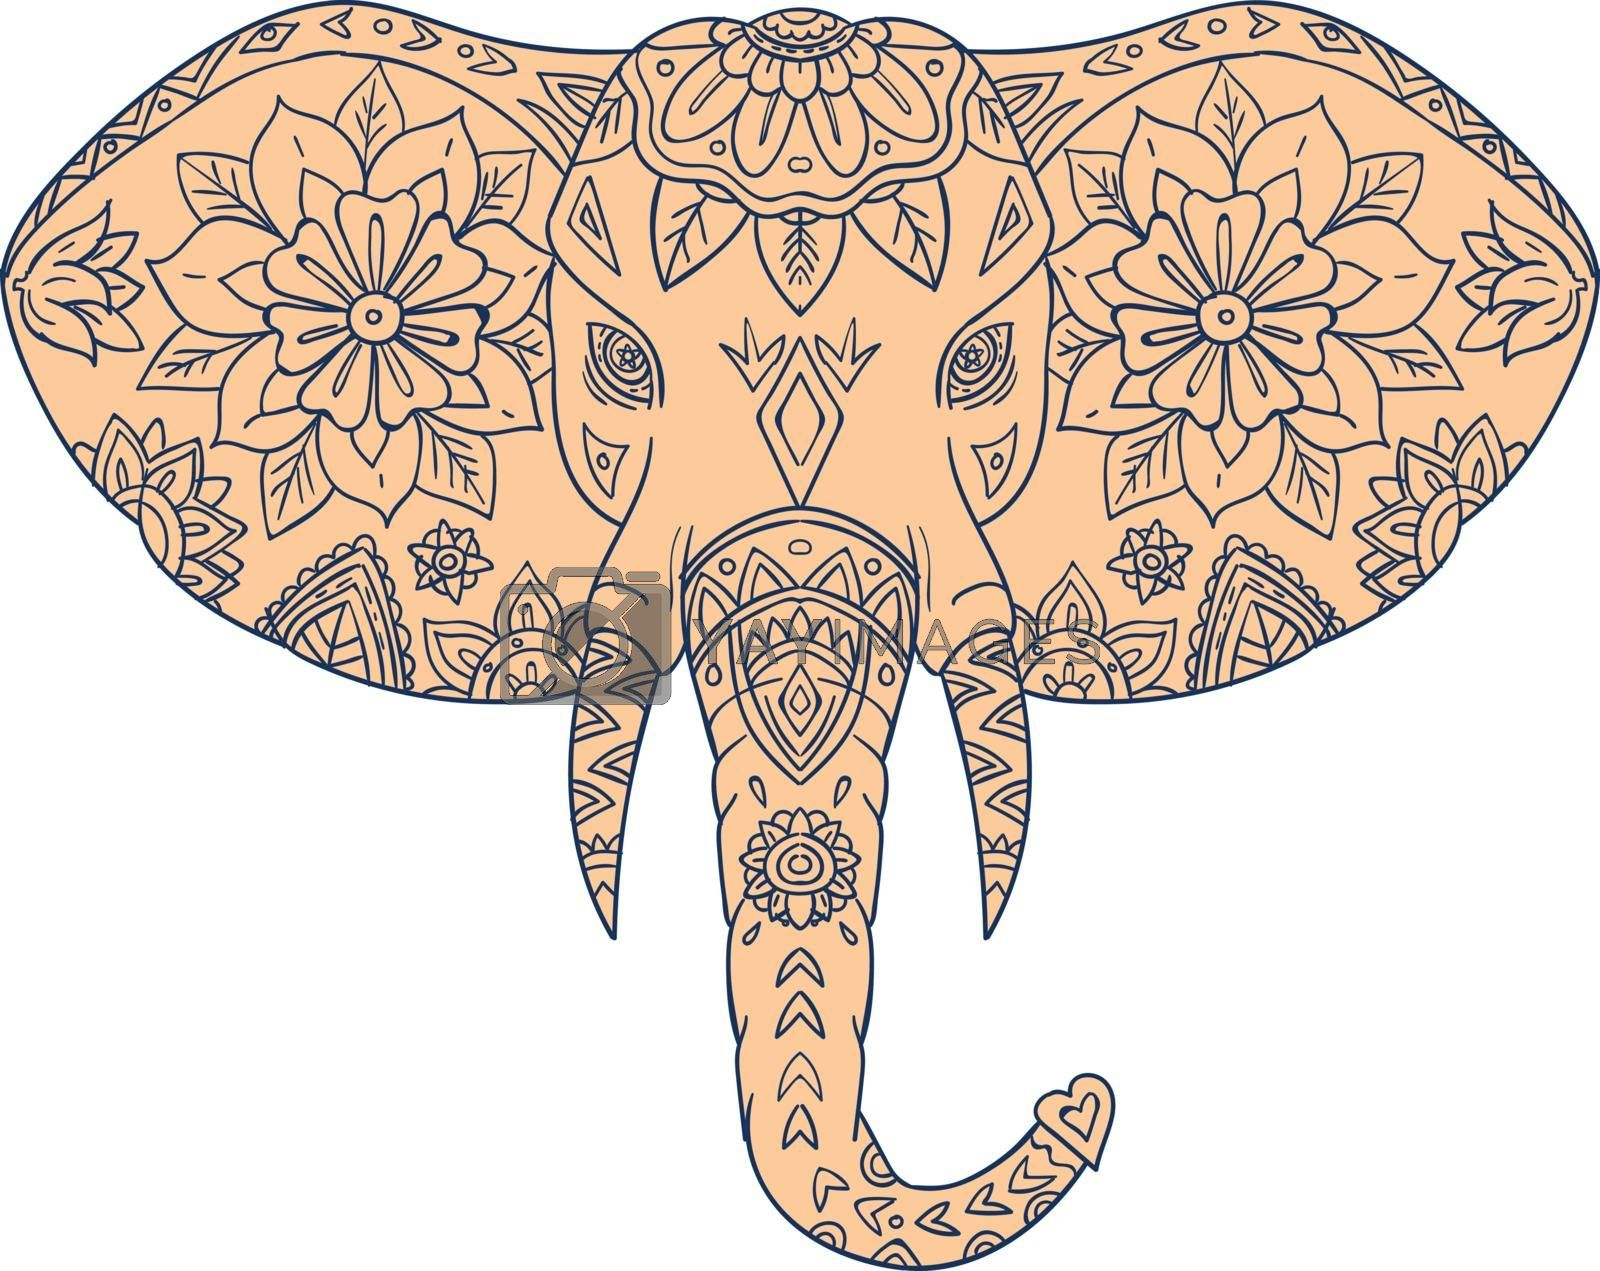 Mandala style illustration of an elephant head viewed from front set on isolated white background.